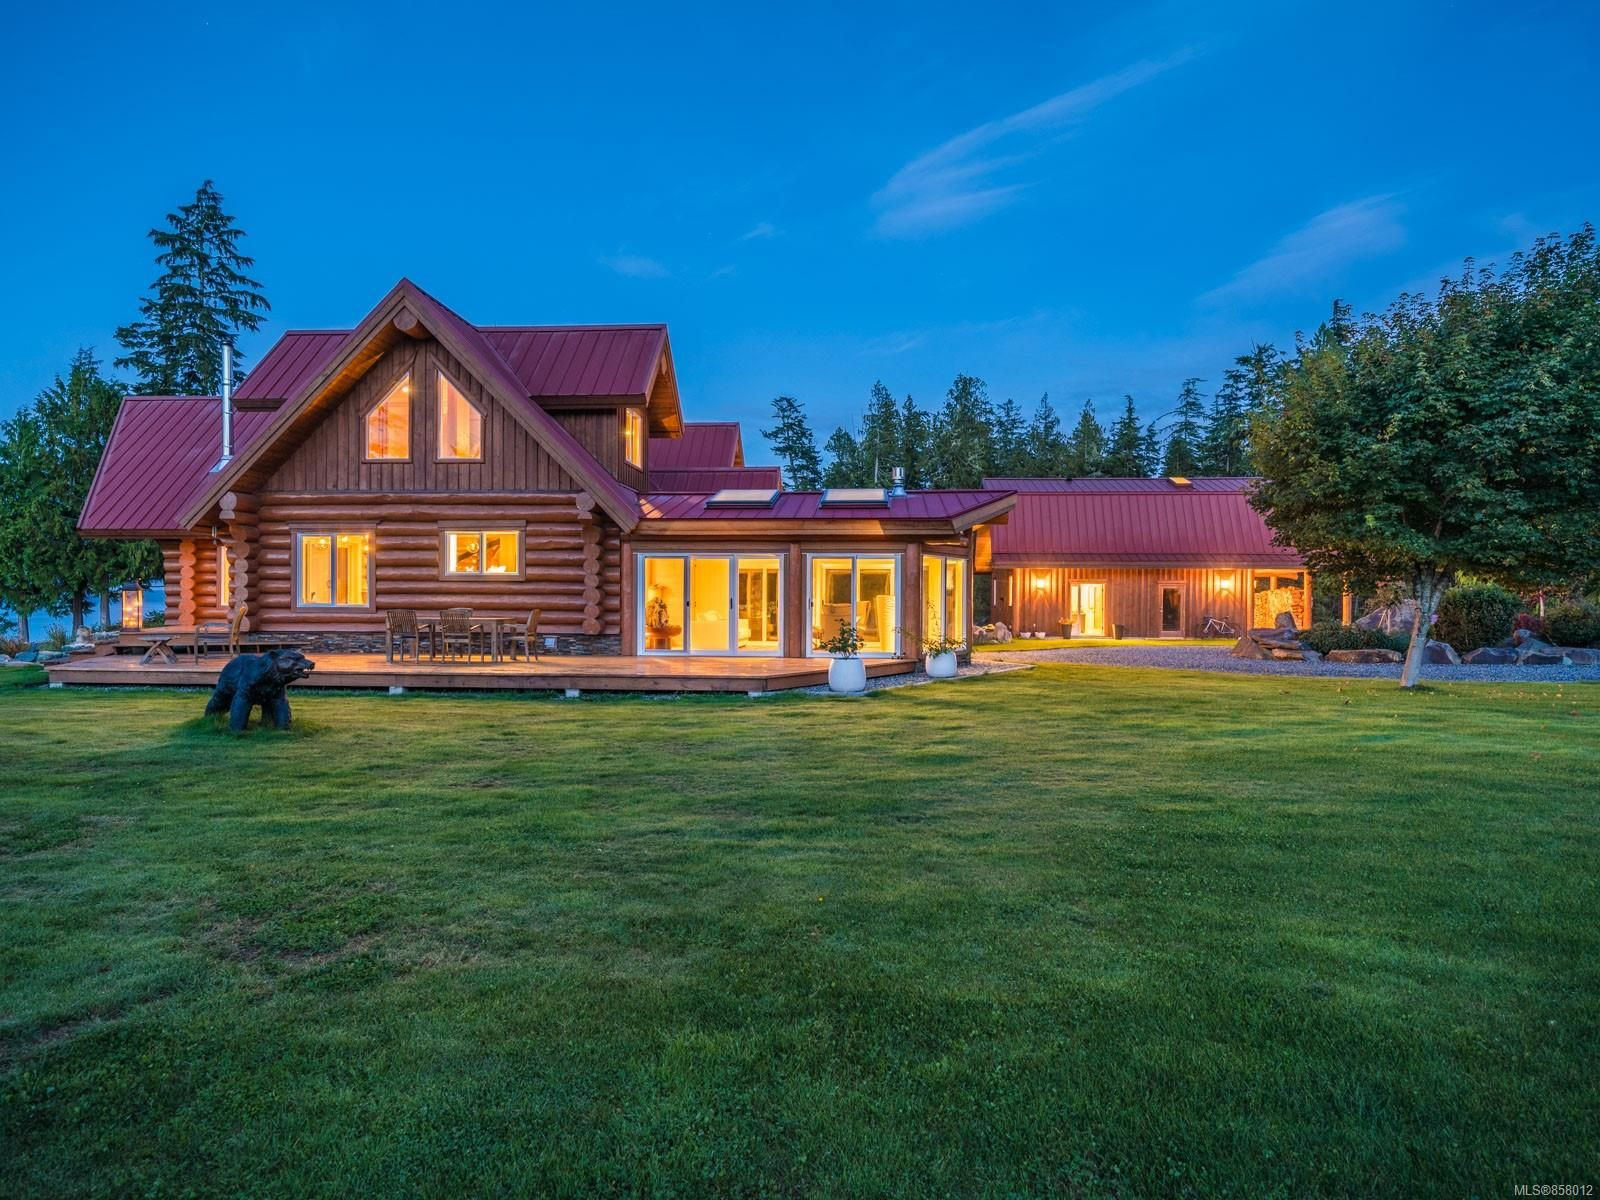 Photo 5: Photos: 6030 MINE Rd in : NI Port McNeill House for sale (North Island)  : MLS®# 858012